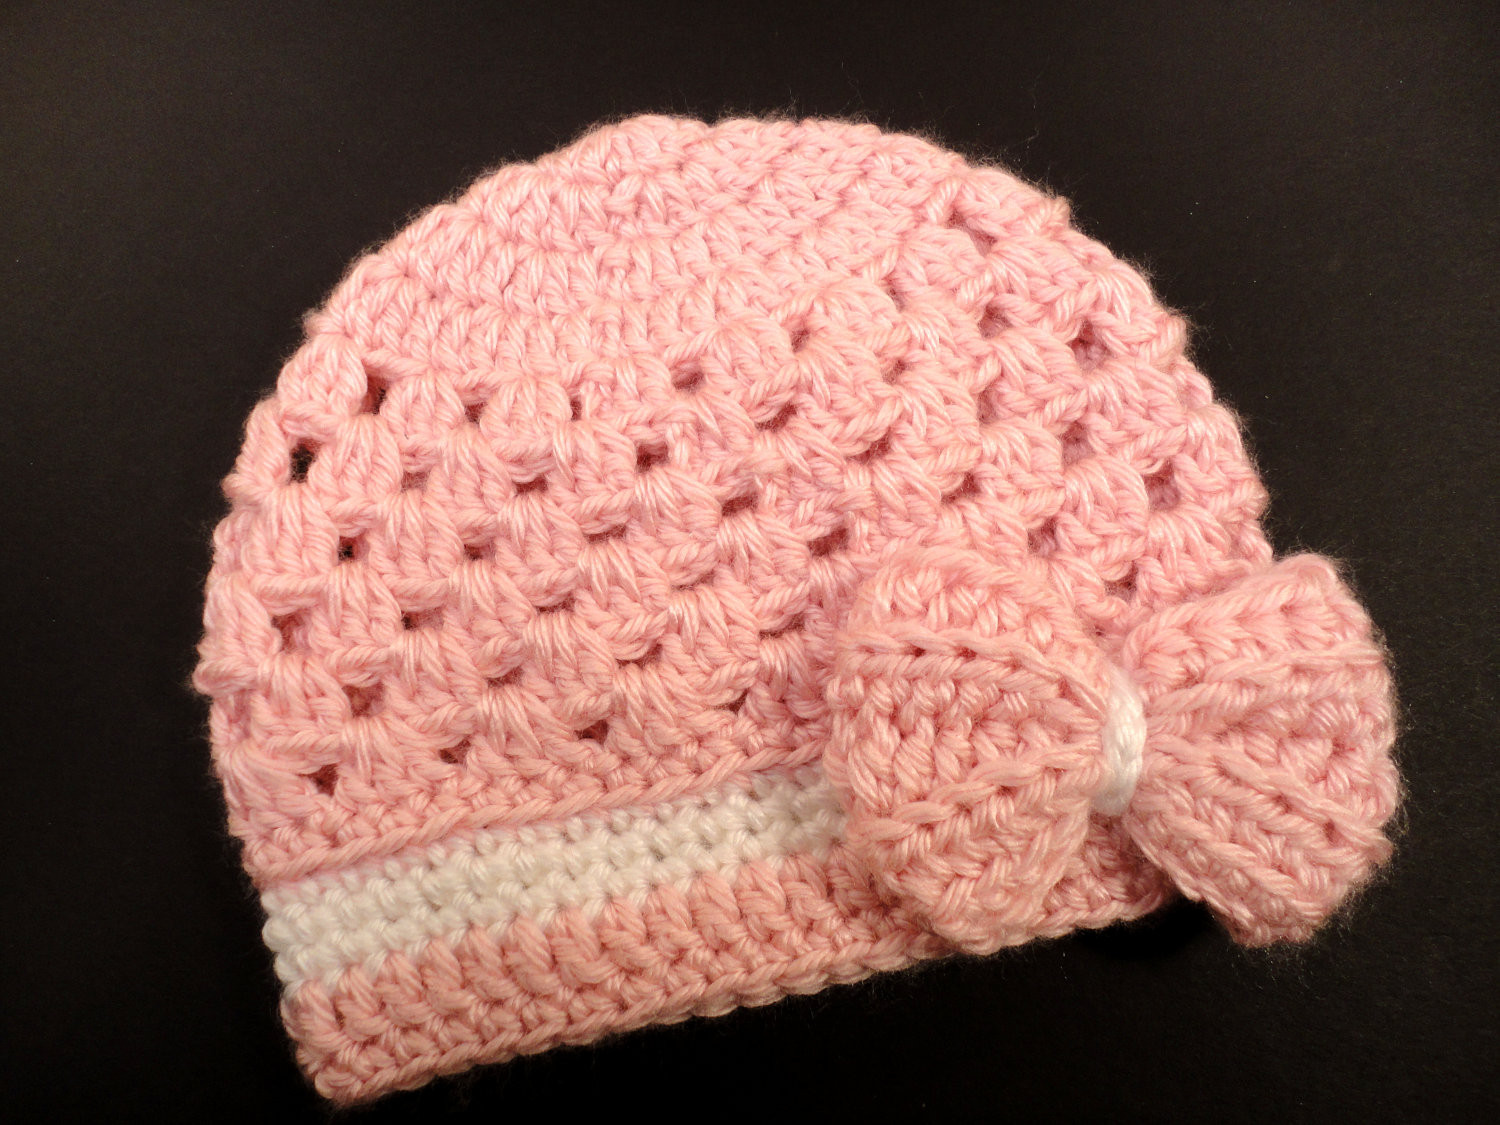 Beautiful Free Crochet Baby Hats Patterns for Beginners Crochet Free Crochet Patterns for toddlers Of Brilliant 47 Photos Free Crochet Patterns for toddlers